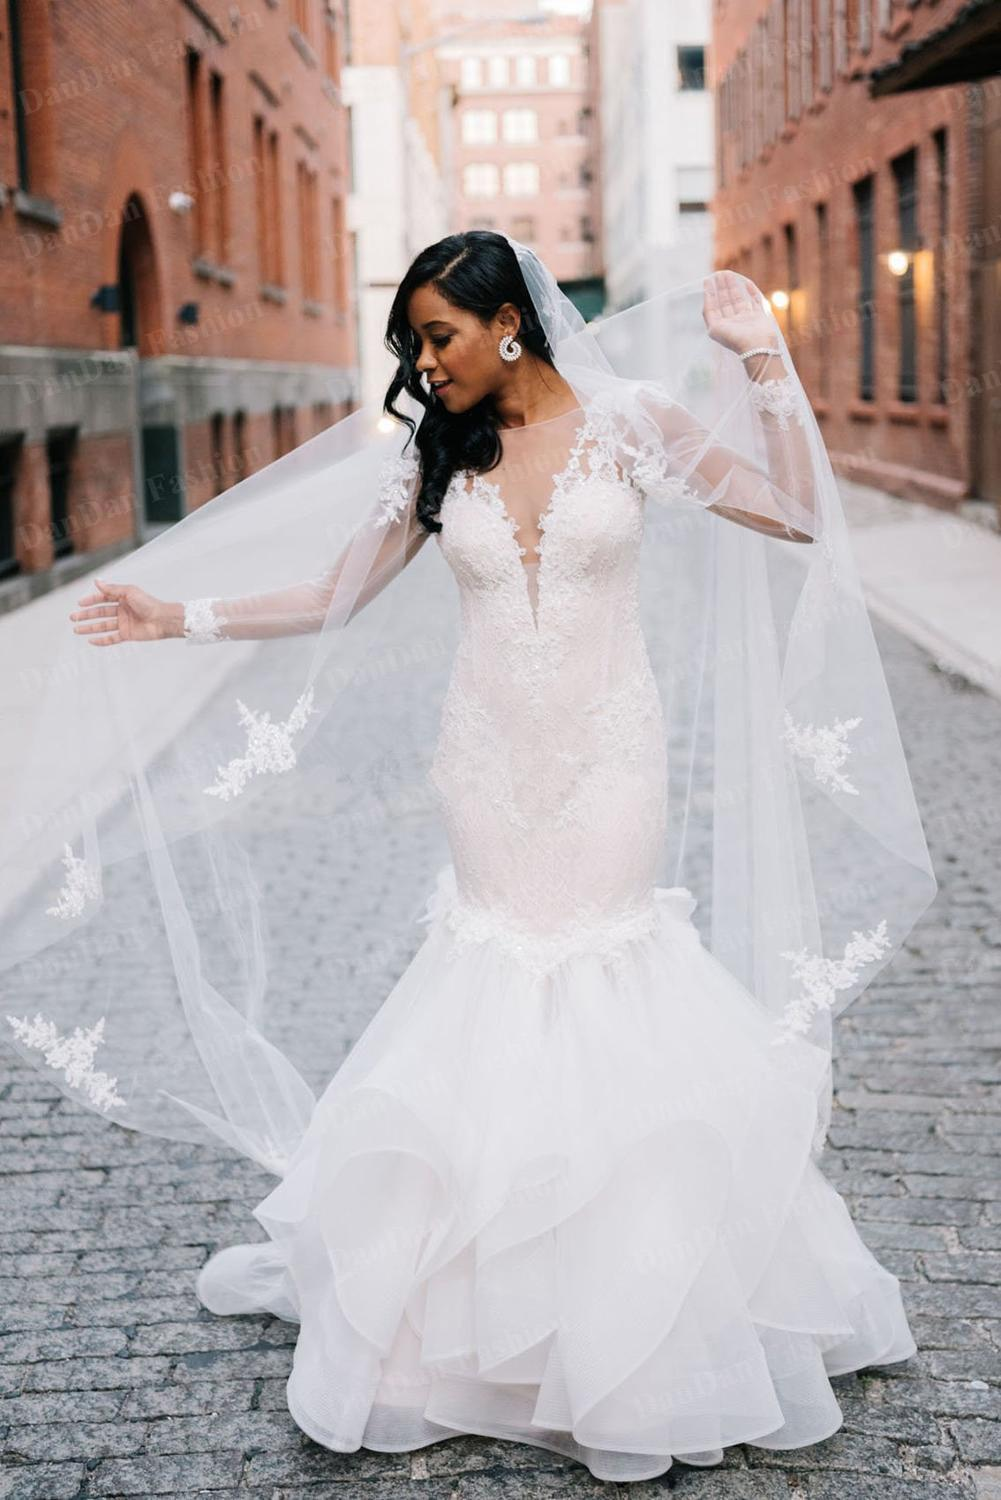 African Mermaid Wedding Dresses 2020 vestido de novia Long Sleeve Wedding Gowns Sheer Illusion Lace Bridal Dress Handmade